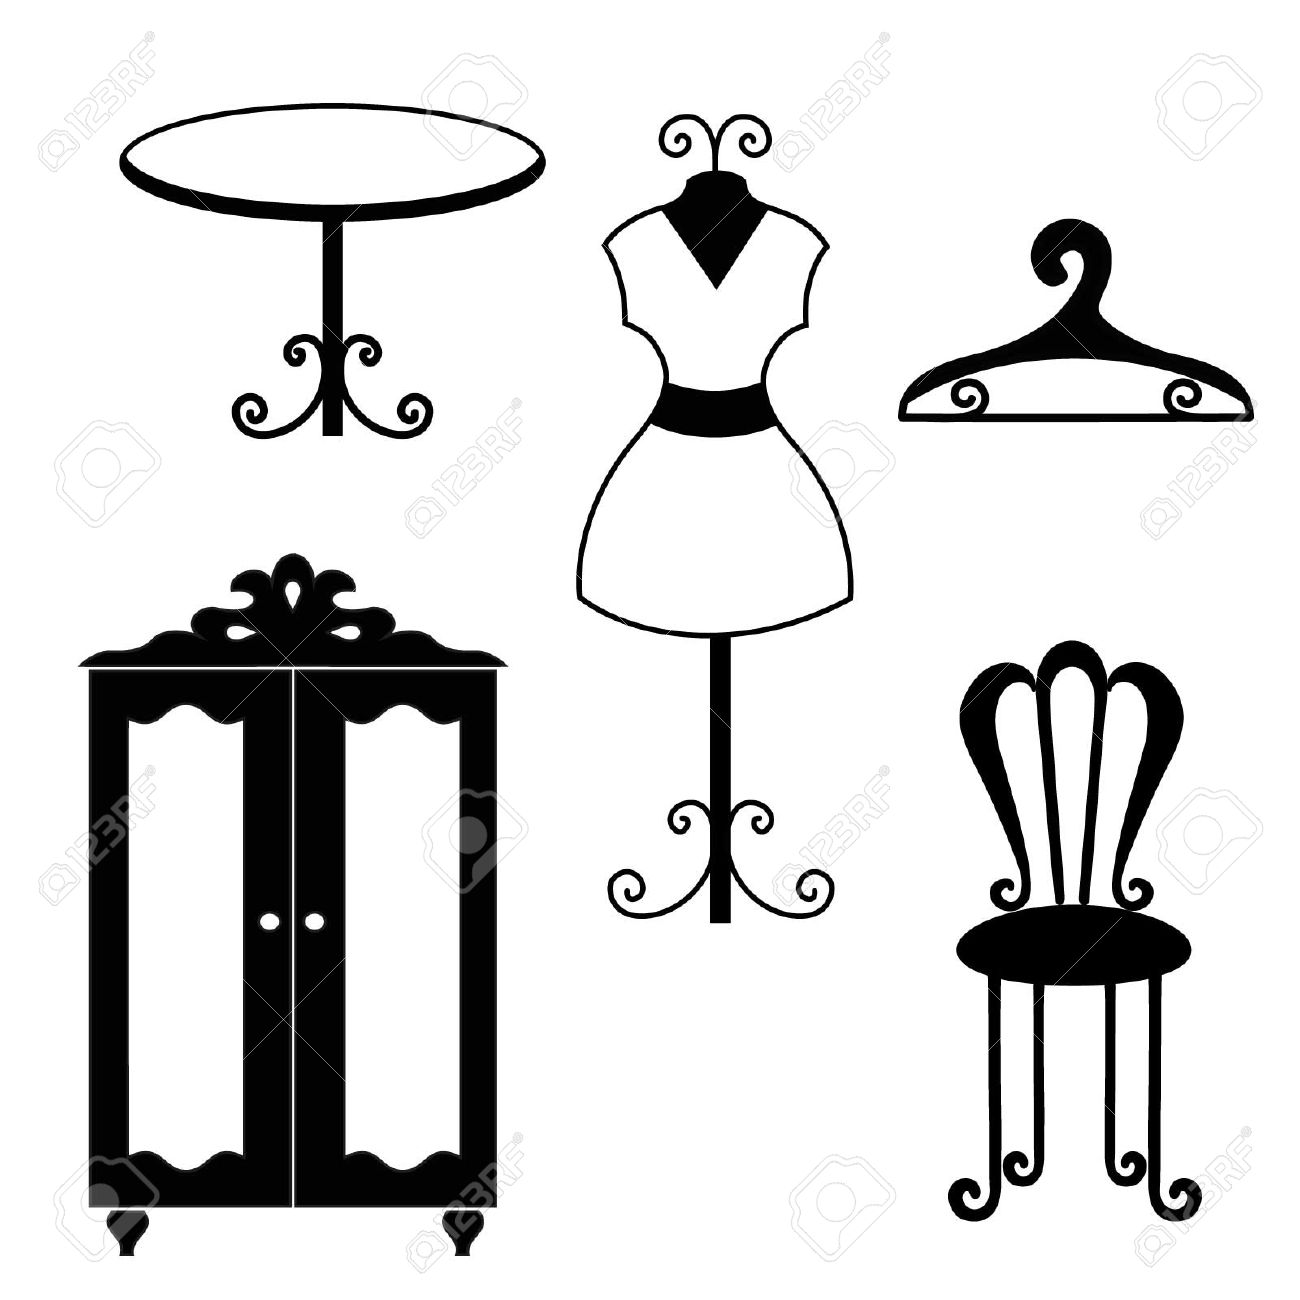 Antique chair silhouette -  Furniture Antique Furniture Silhouettes Download